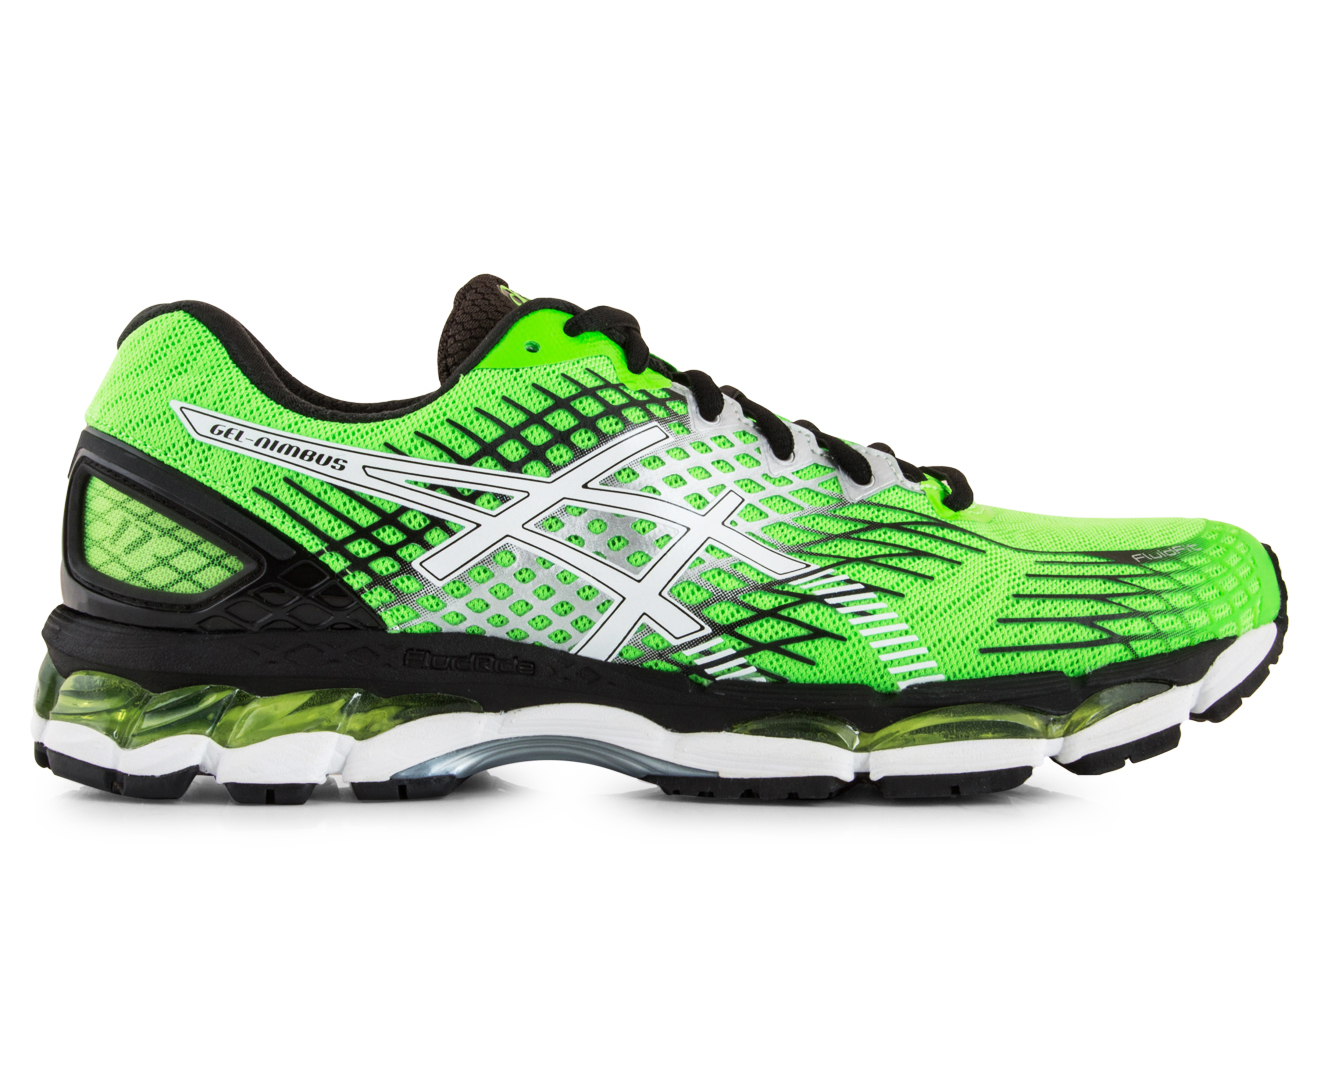 asics men 39 s gel nimbus 17 green white black. Black Bedroom Furniture Sets. Home Design Ideas